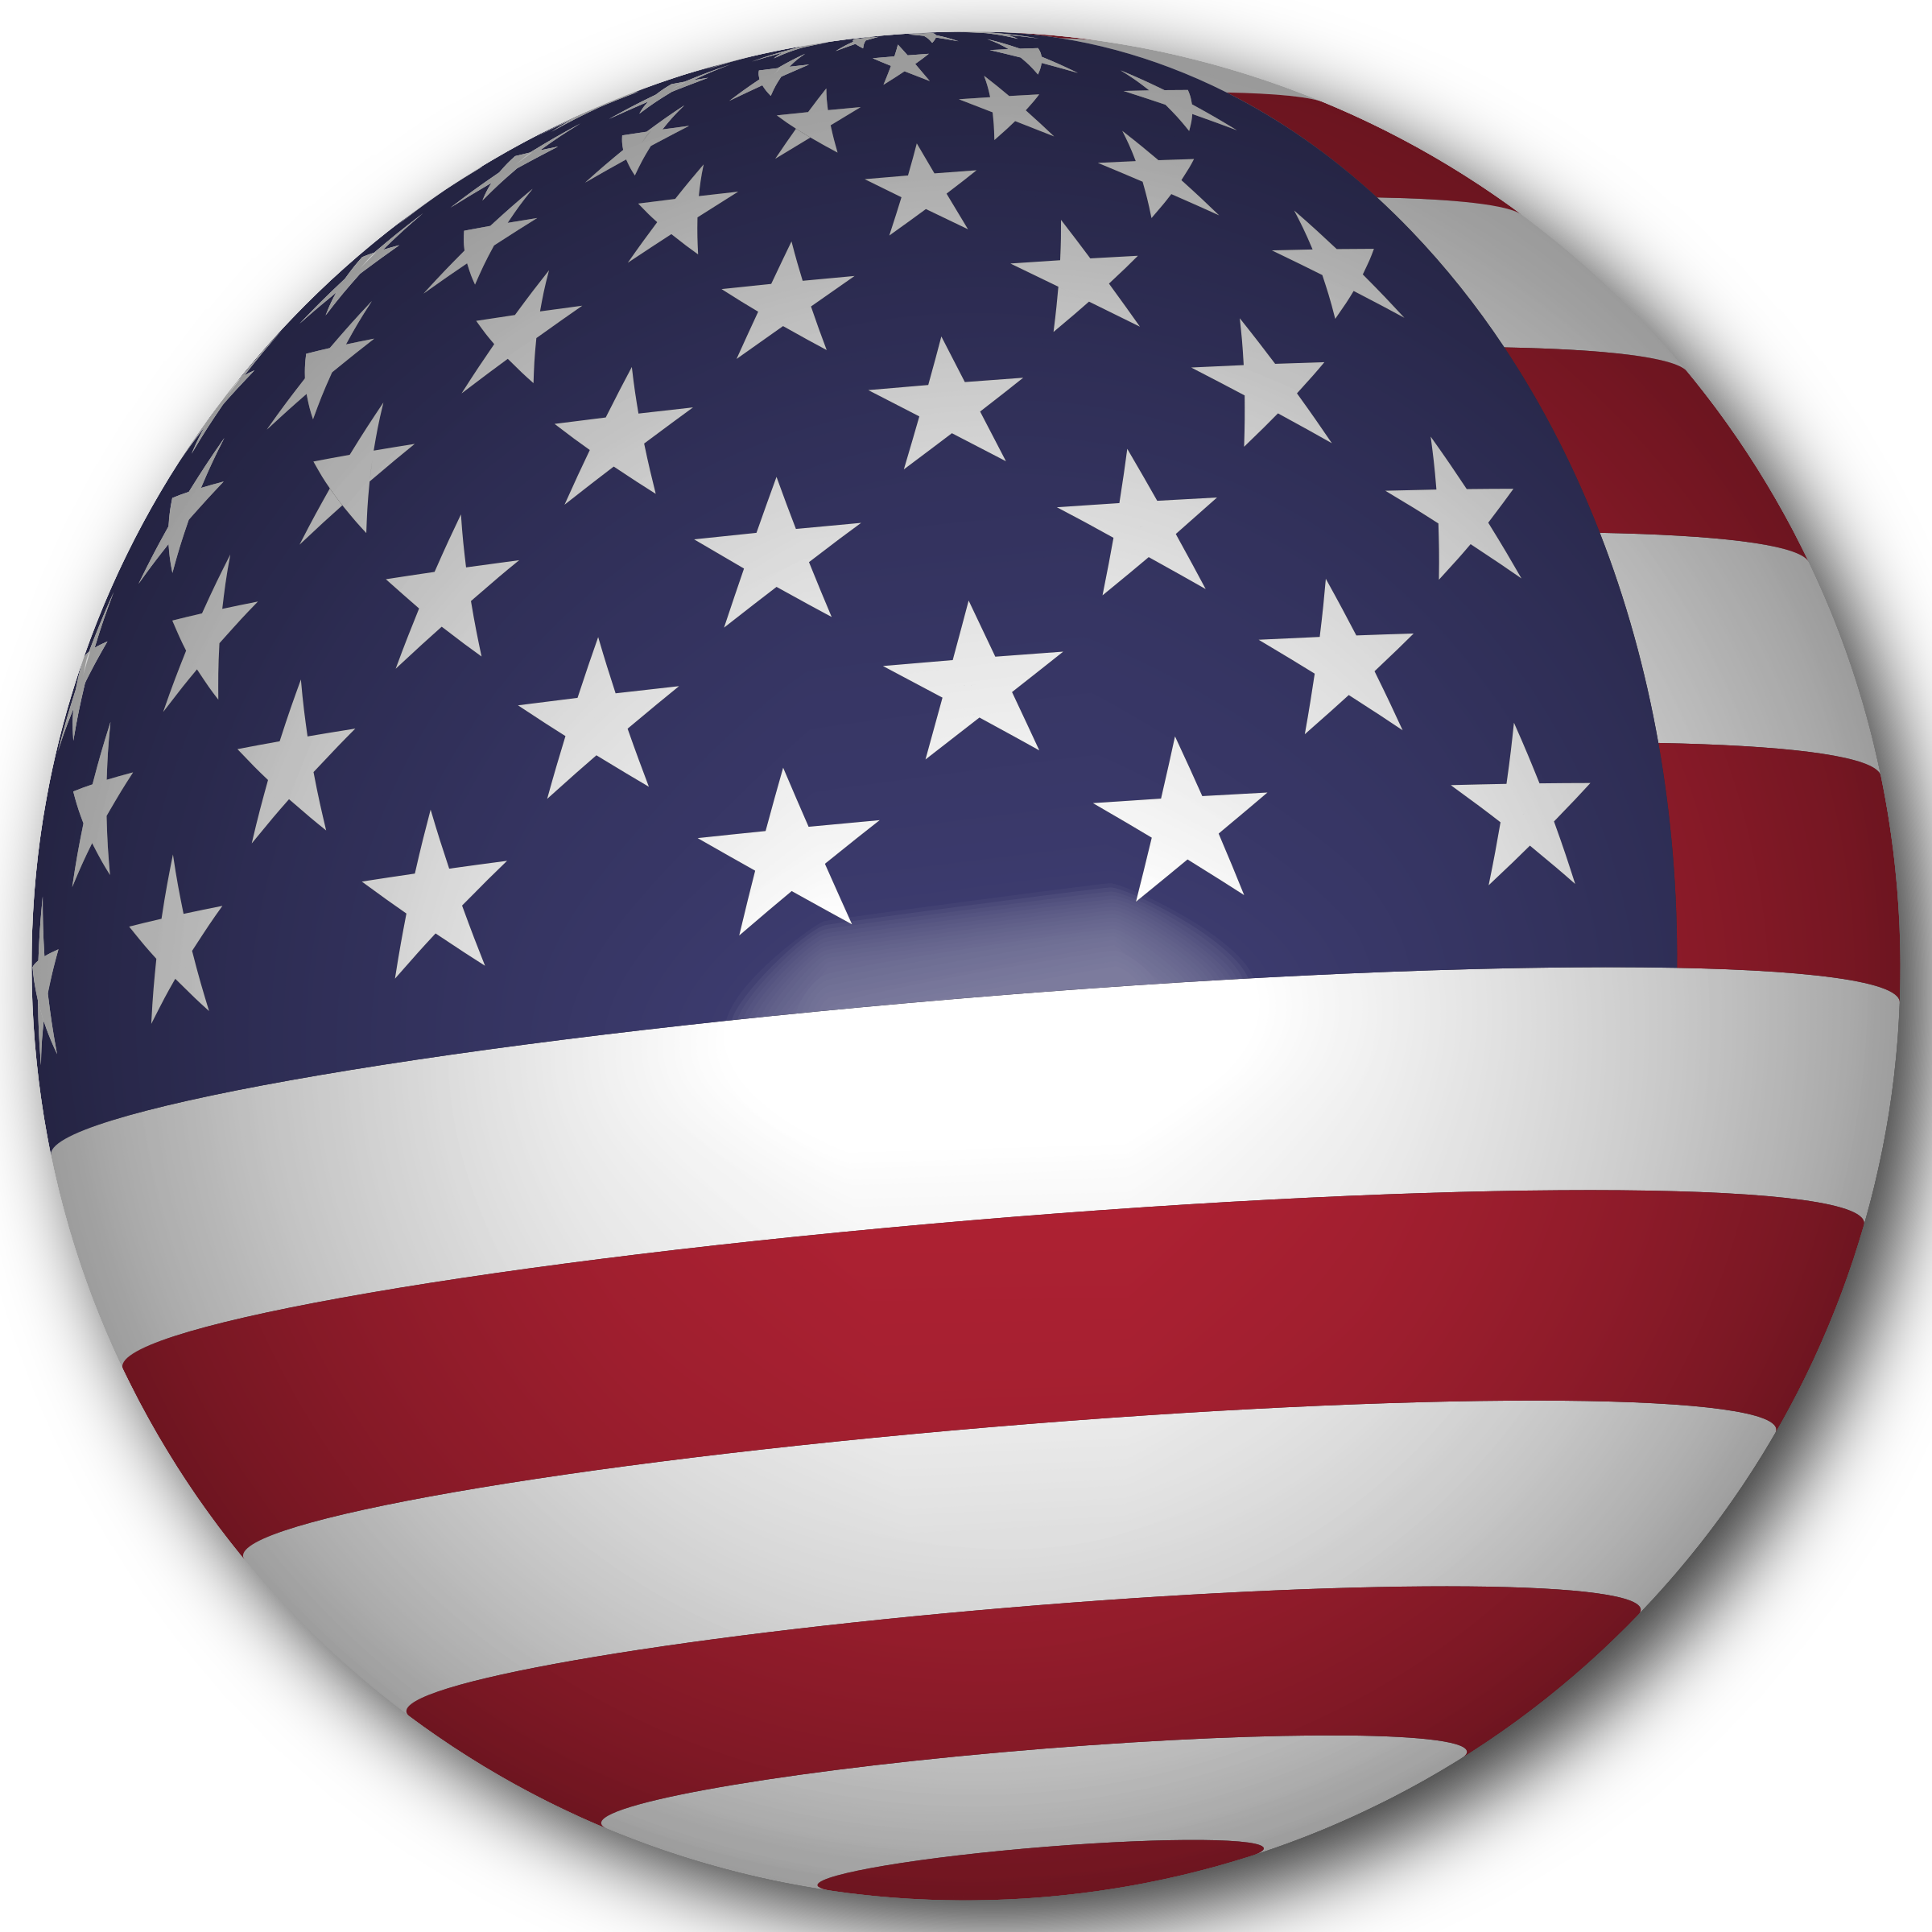 Clipart of us flag png freeuse stock Clipart - USA Flag Sphere png freeuse stock